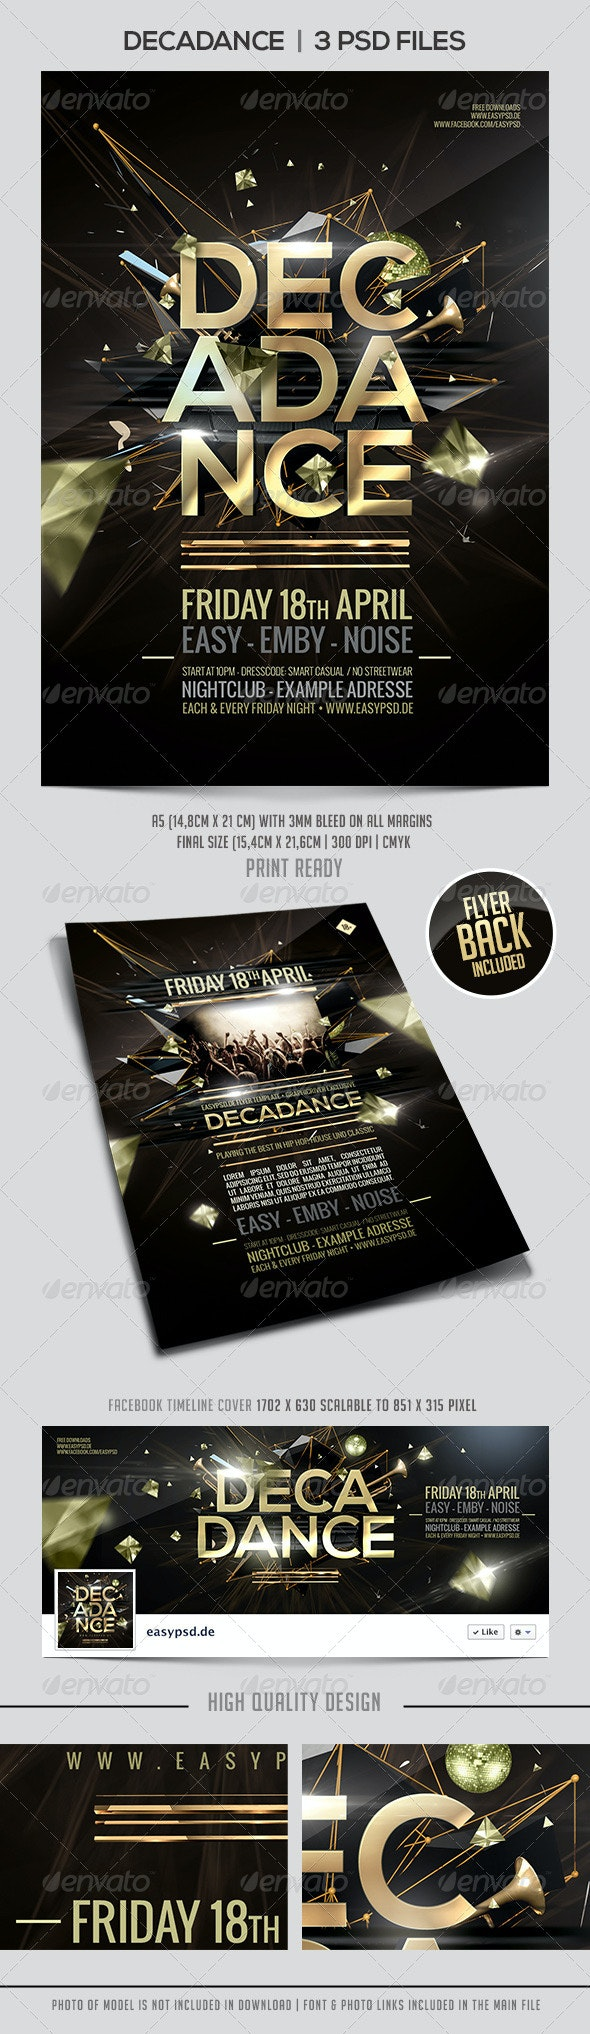 Decadance Flyer Template - Clubs & Parties Events